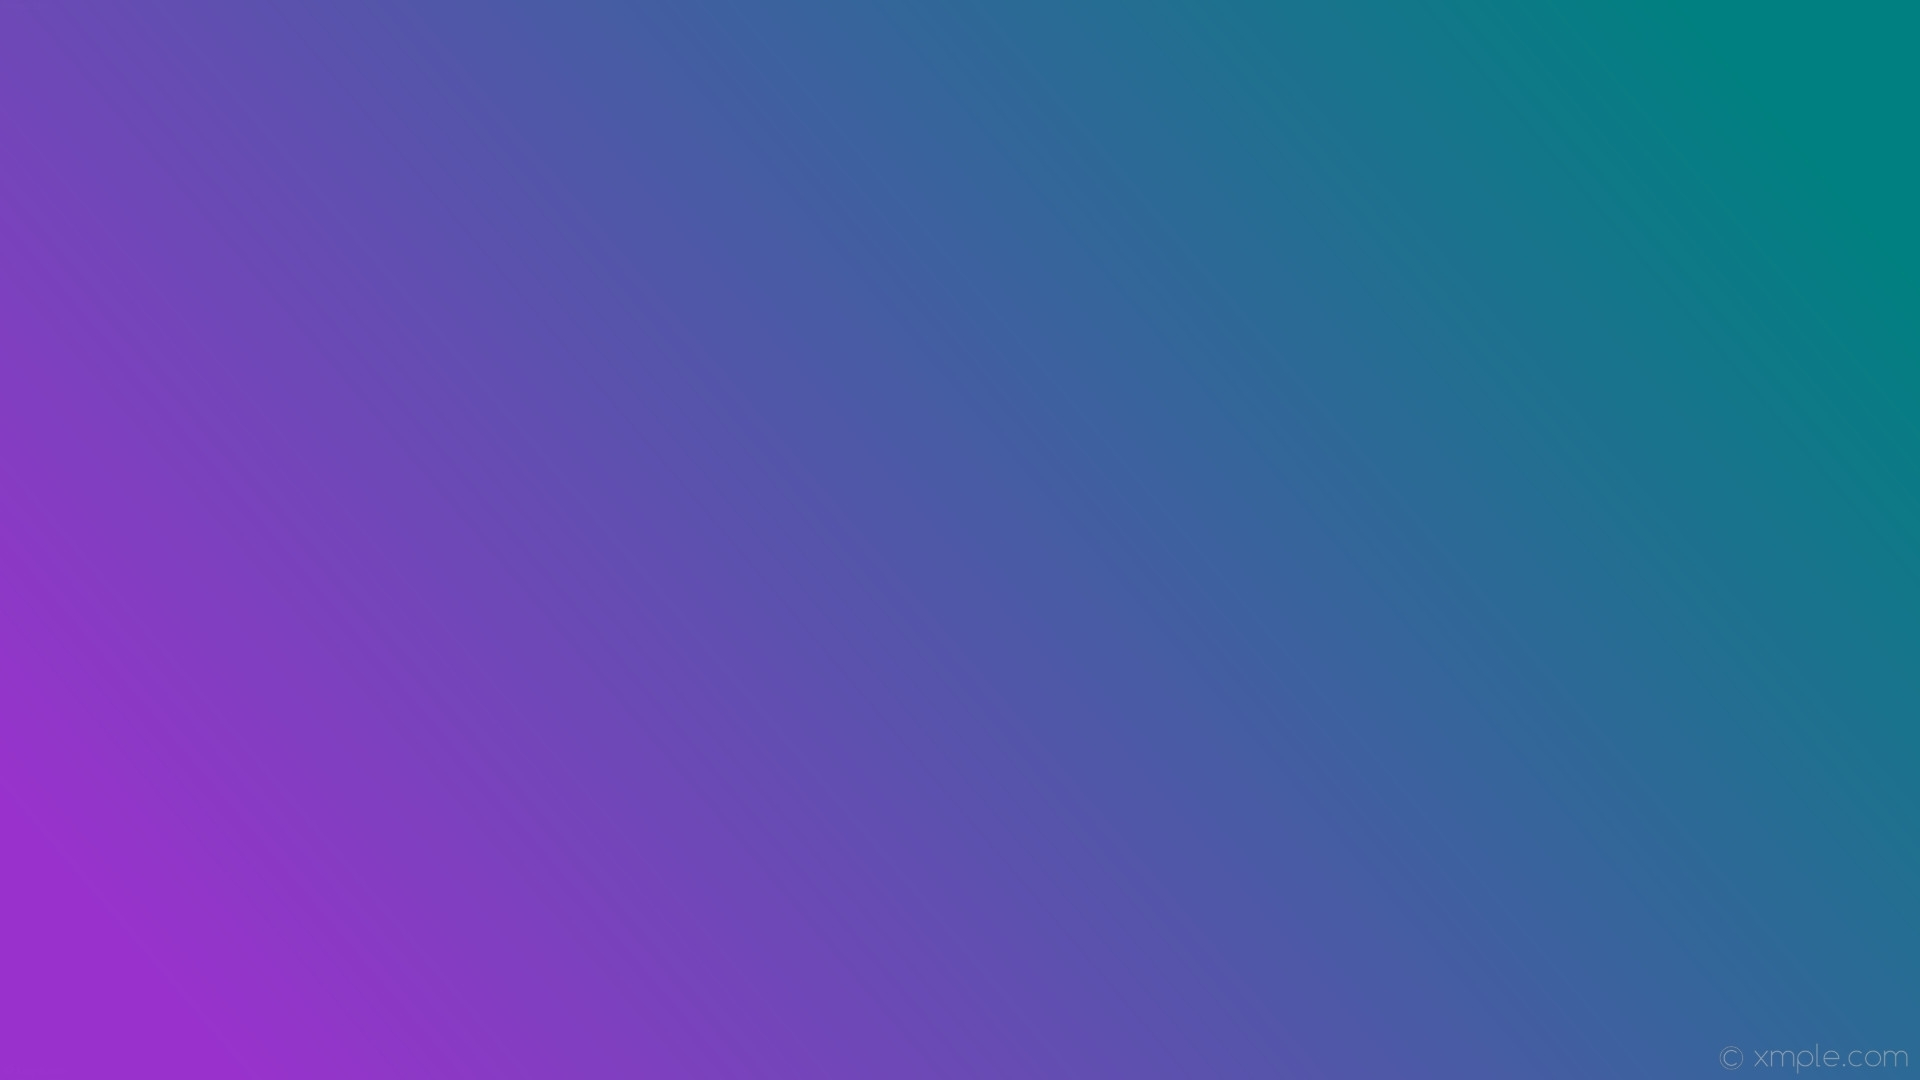 purple and teal wallpaper (60+ images)